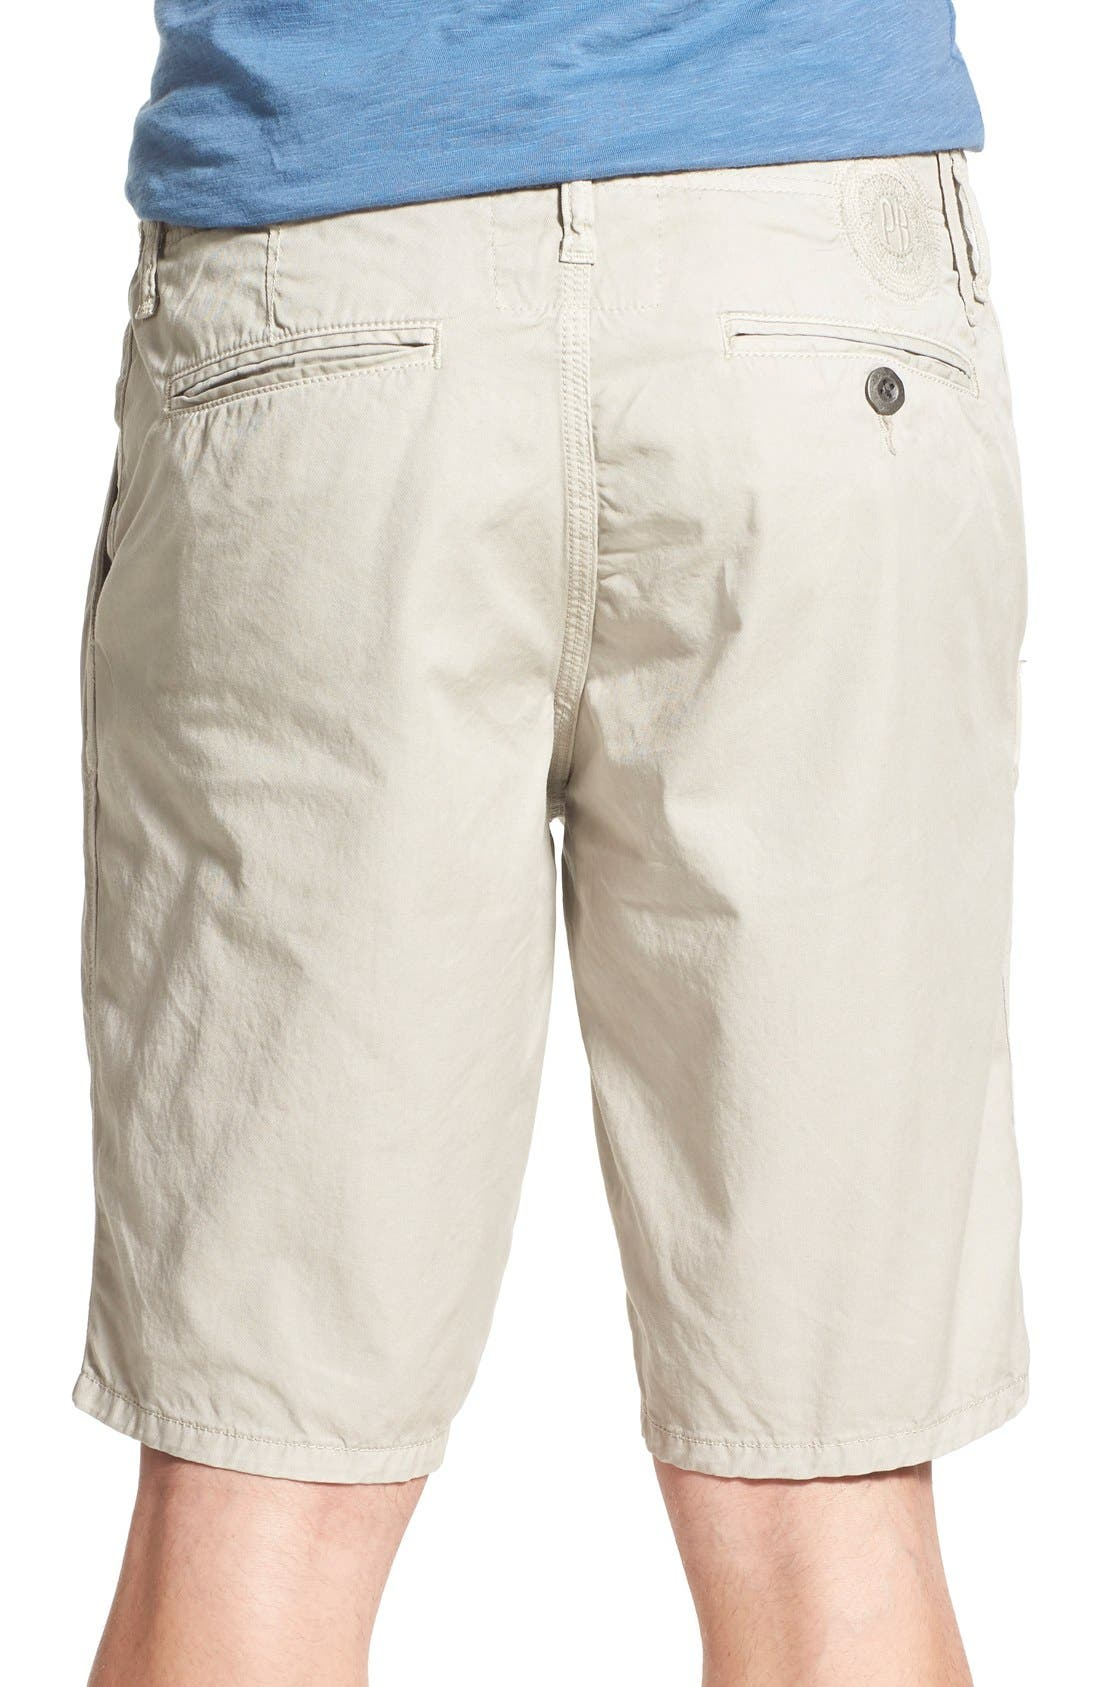 'Napa' Chino Shorts,                             Alternate thumbnail 17, color,